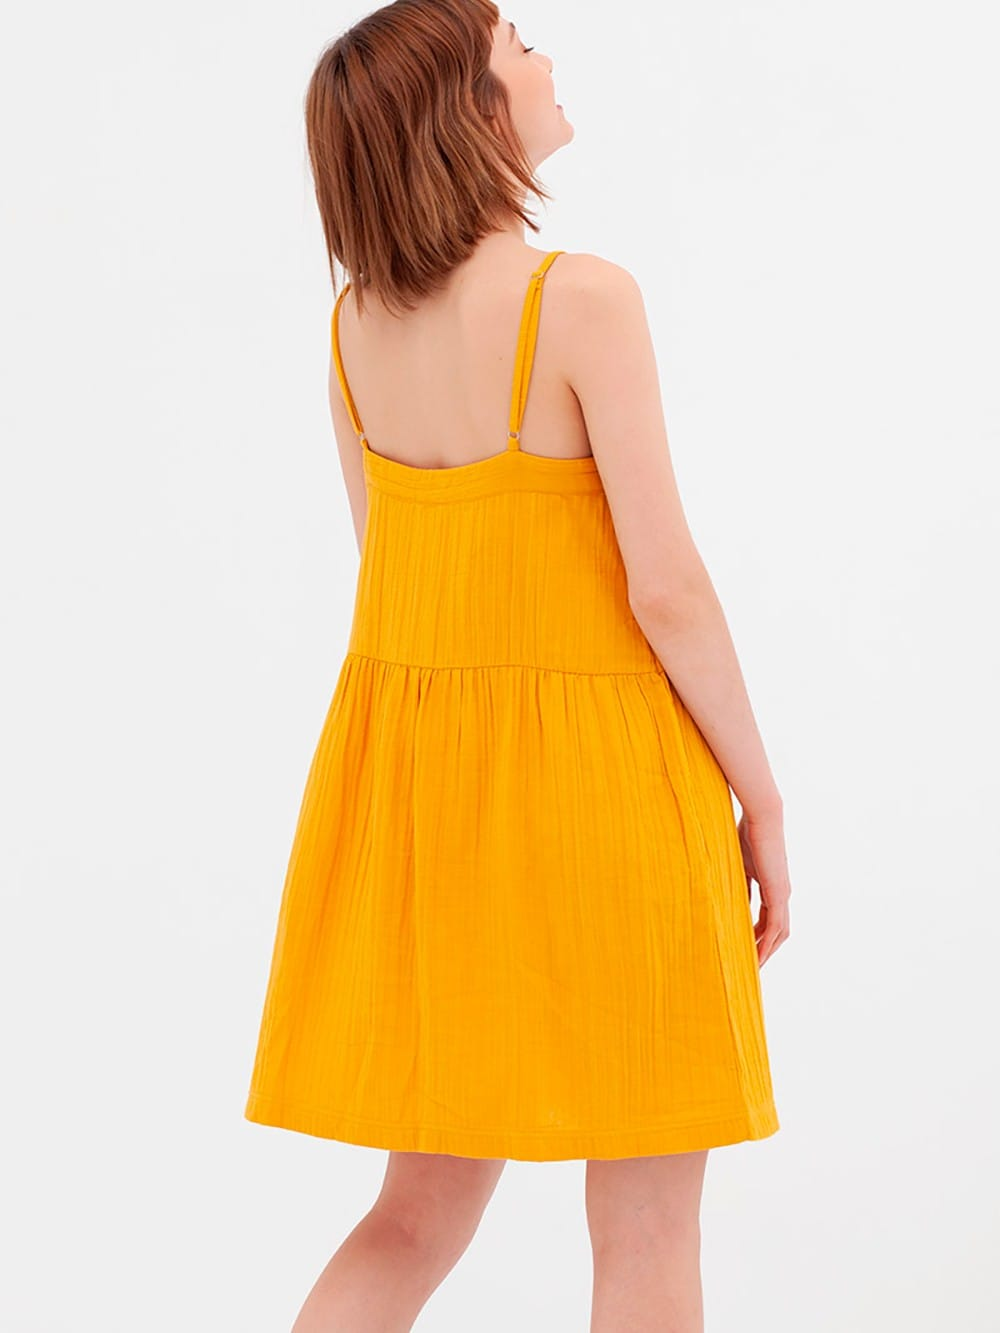 Organic muslin xarleston dress-Ambar